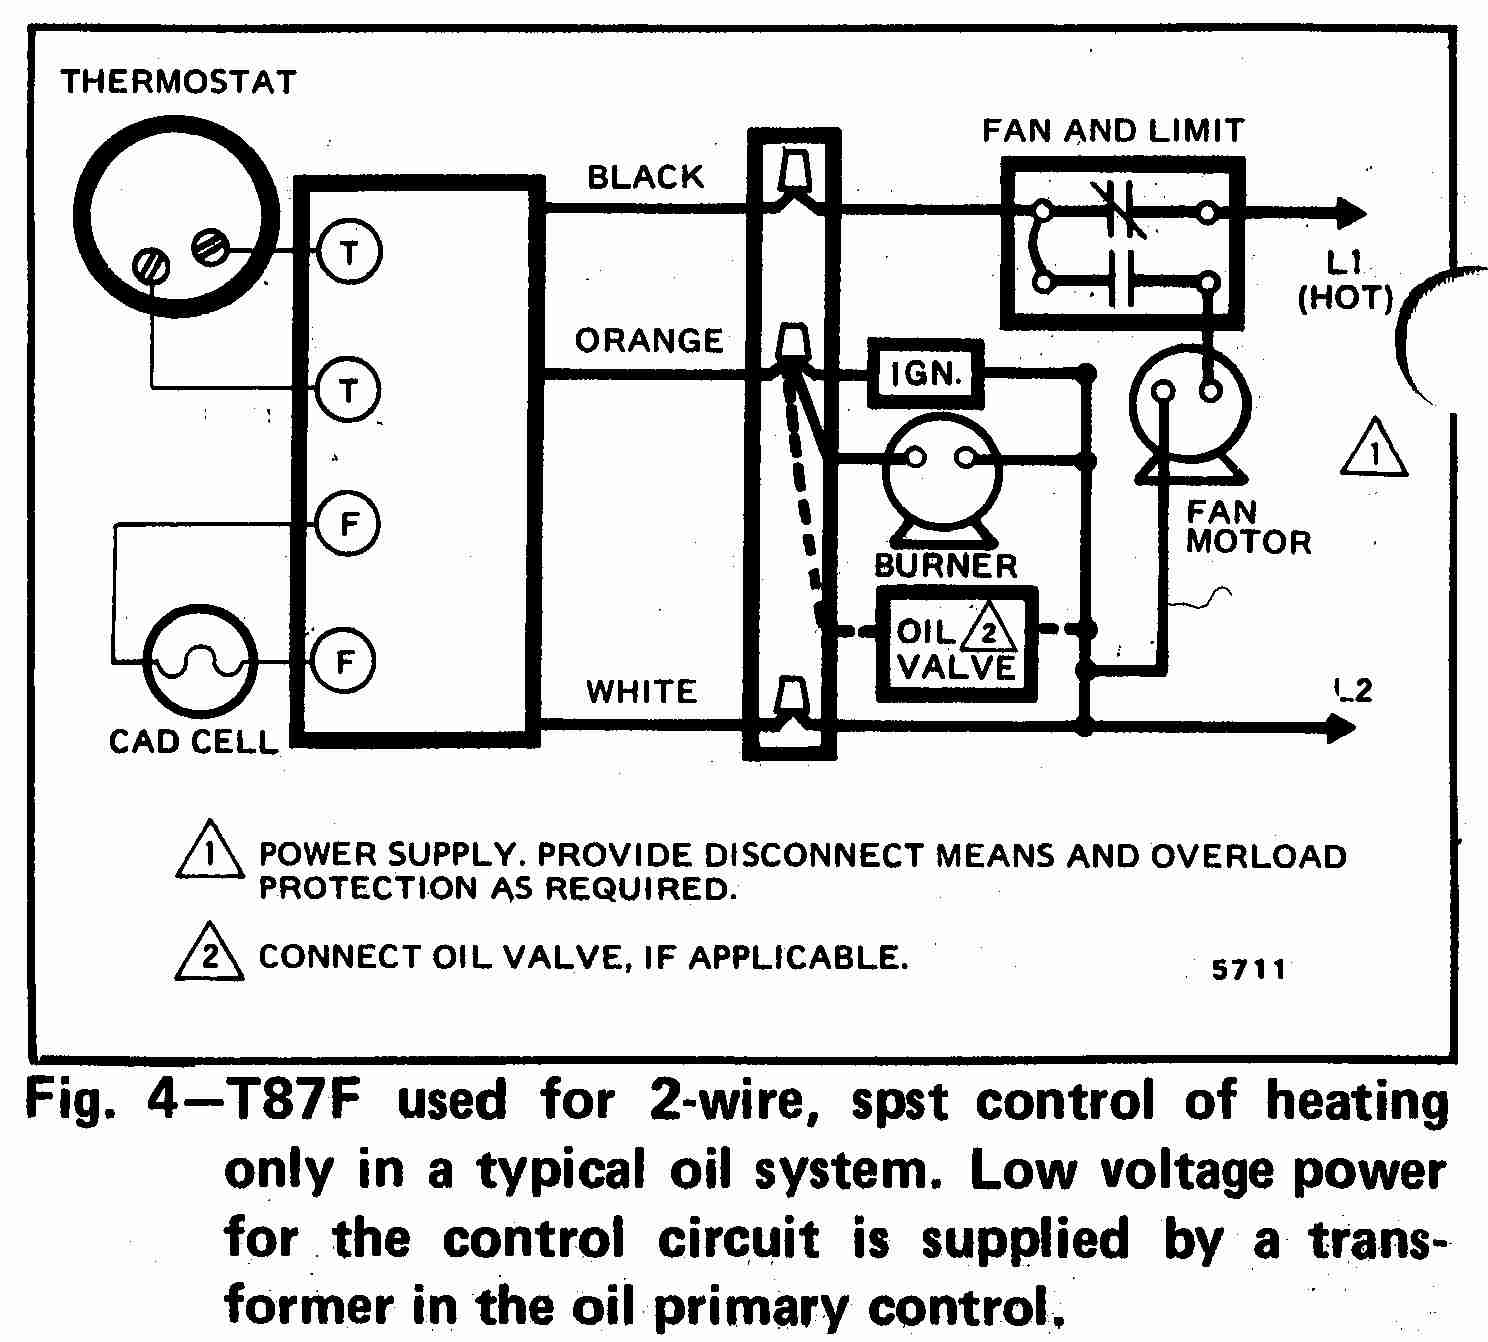 TT_T87F_0002_2W_DJF room thermostat wiring diagrams for hvac systems heating and air conditioning wiring diagrams at crackthecode.co